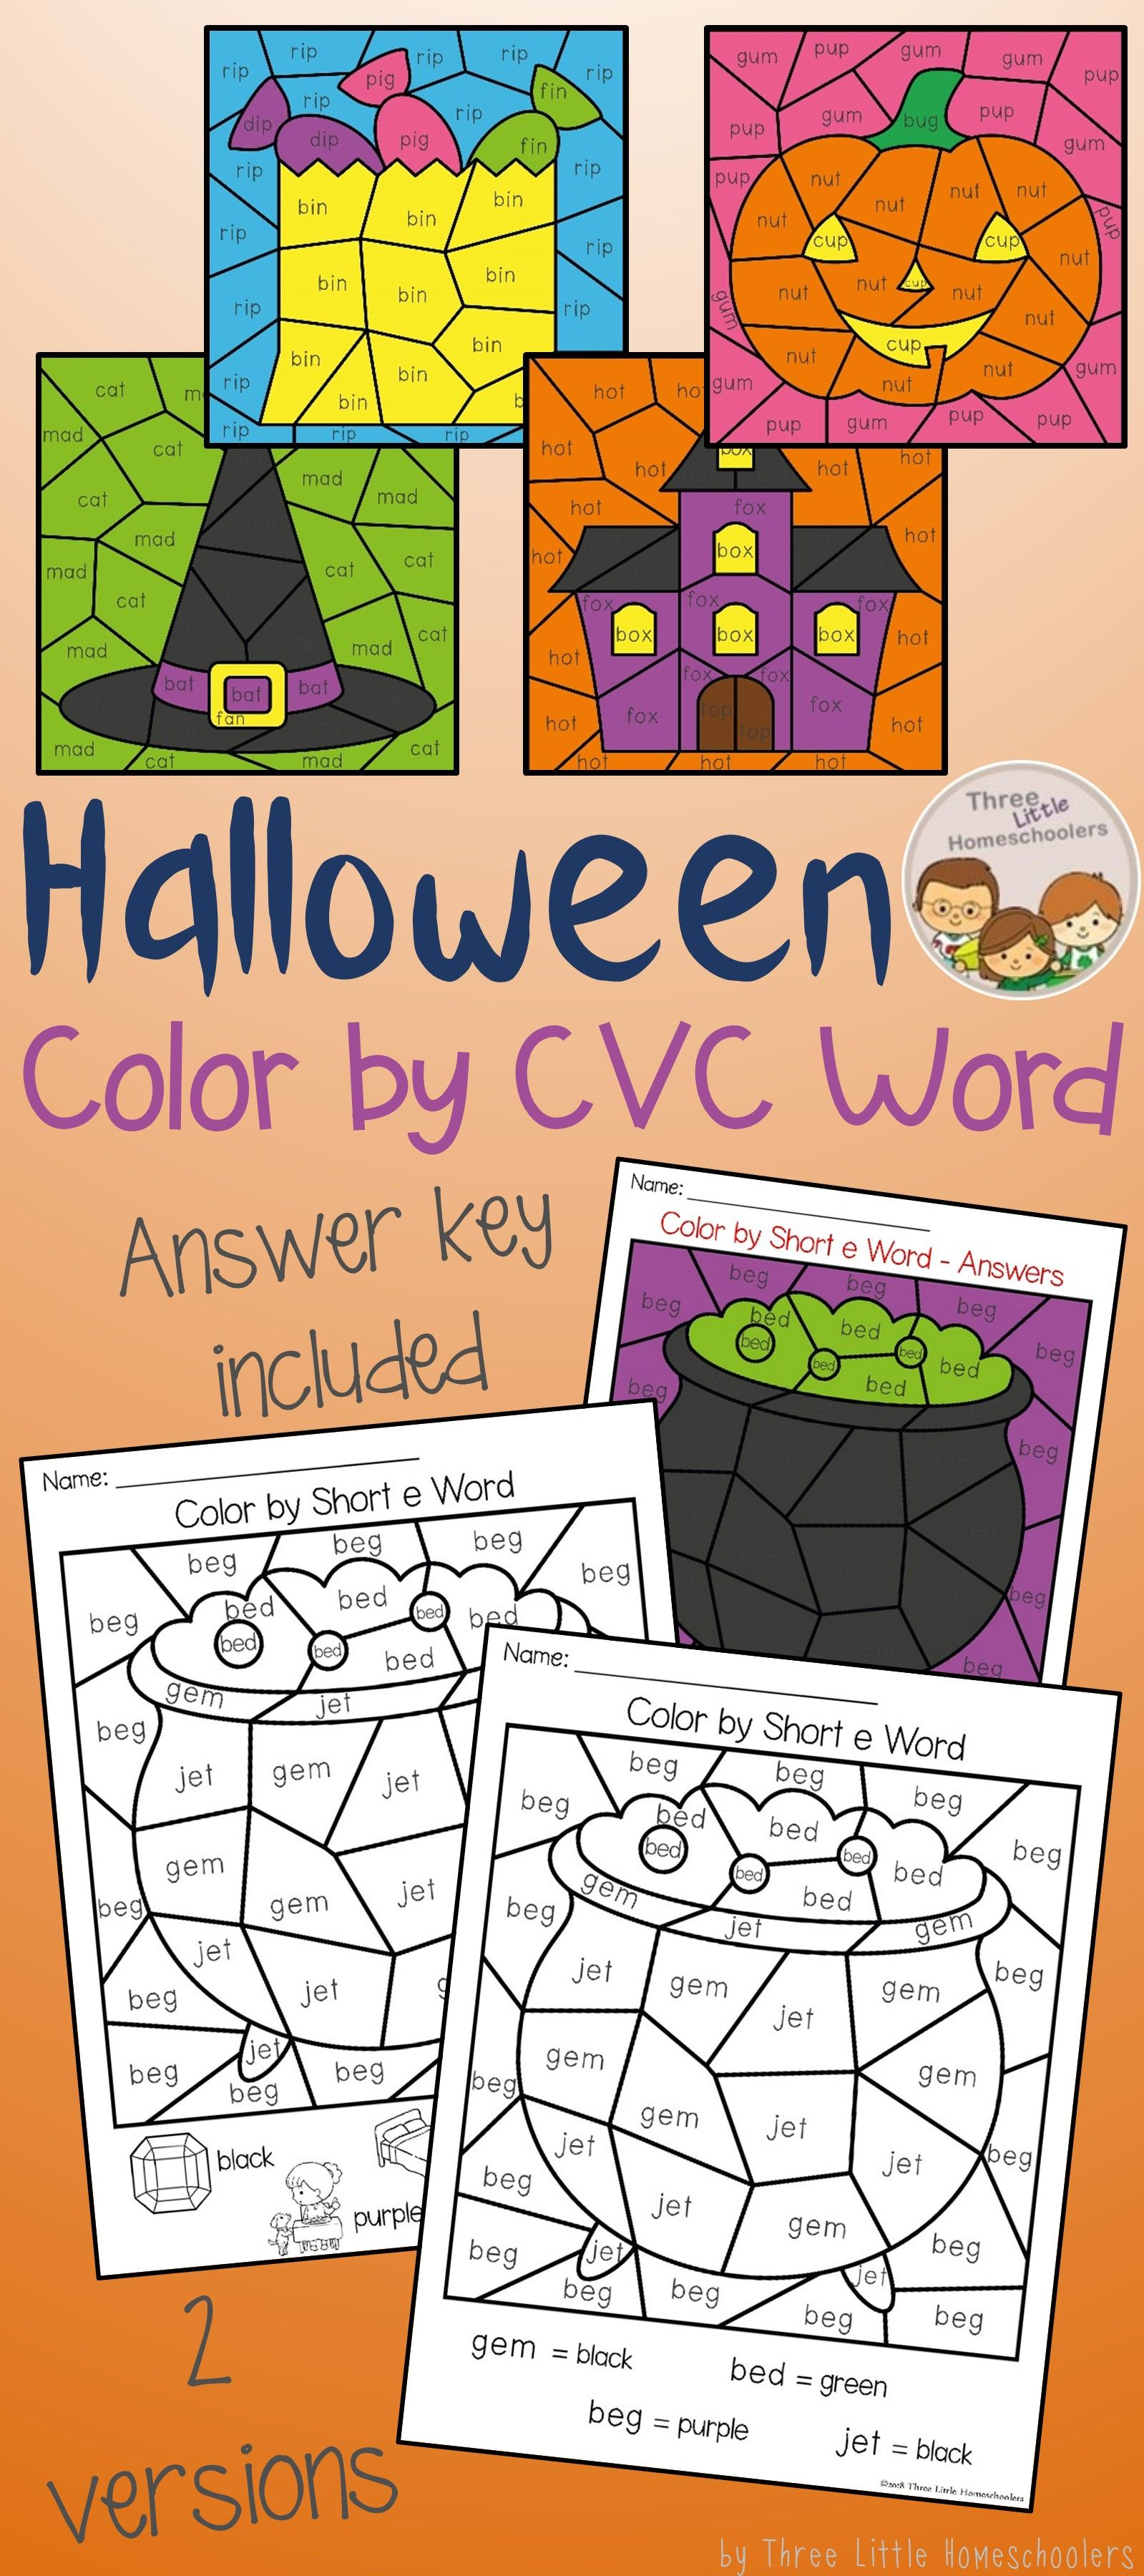 Halloween Color By Cvc Word